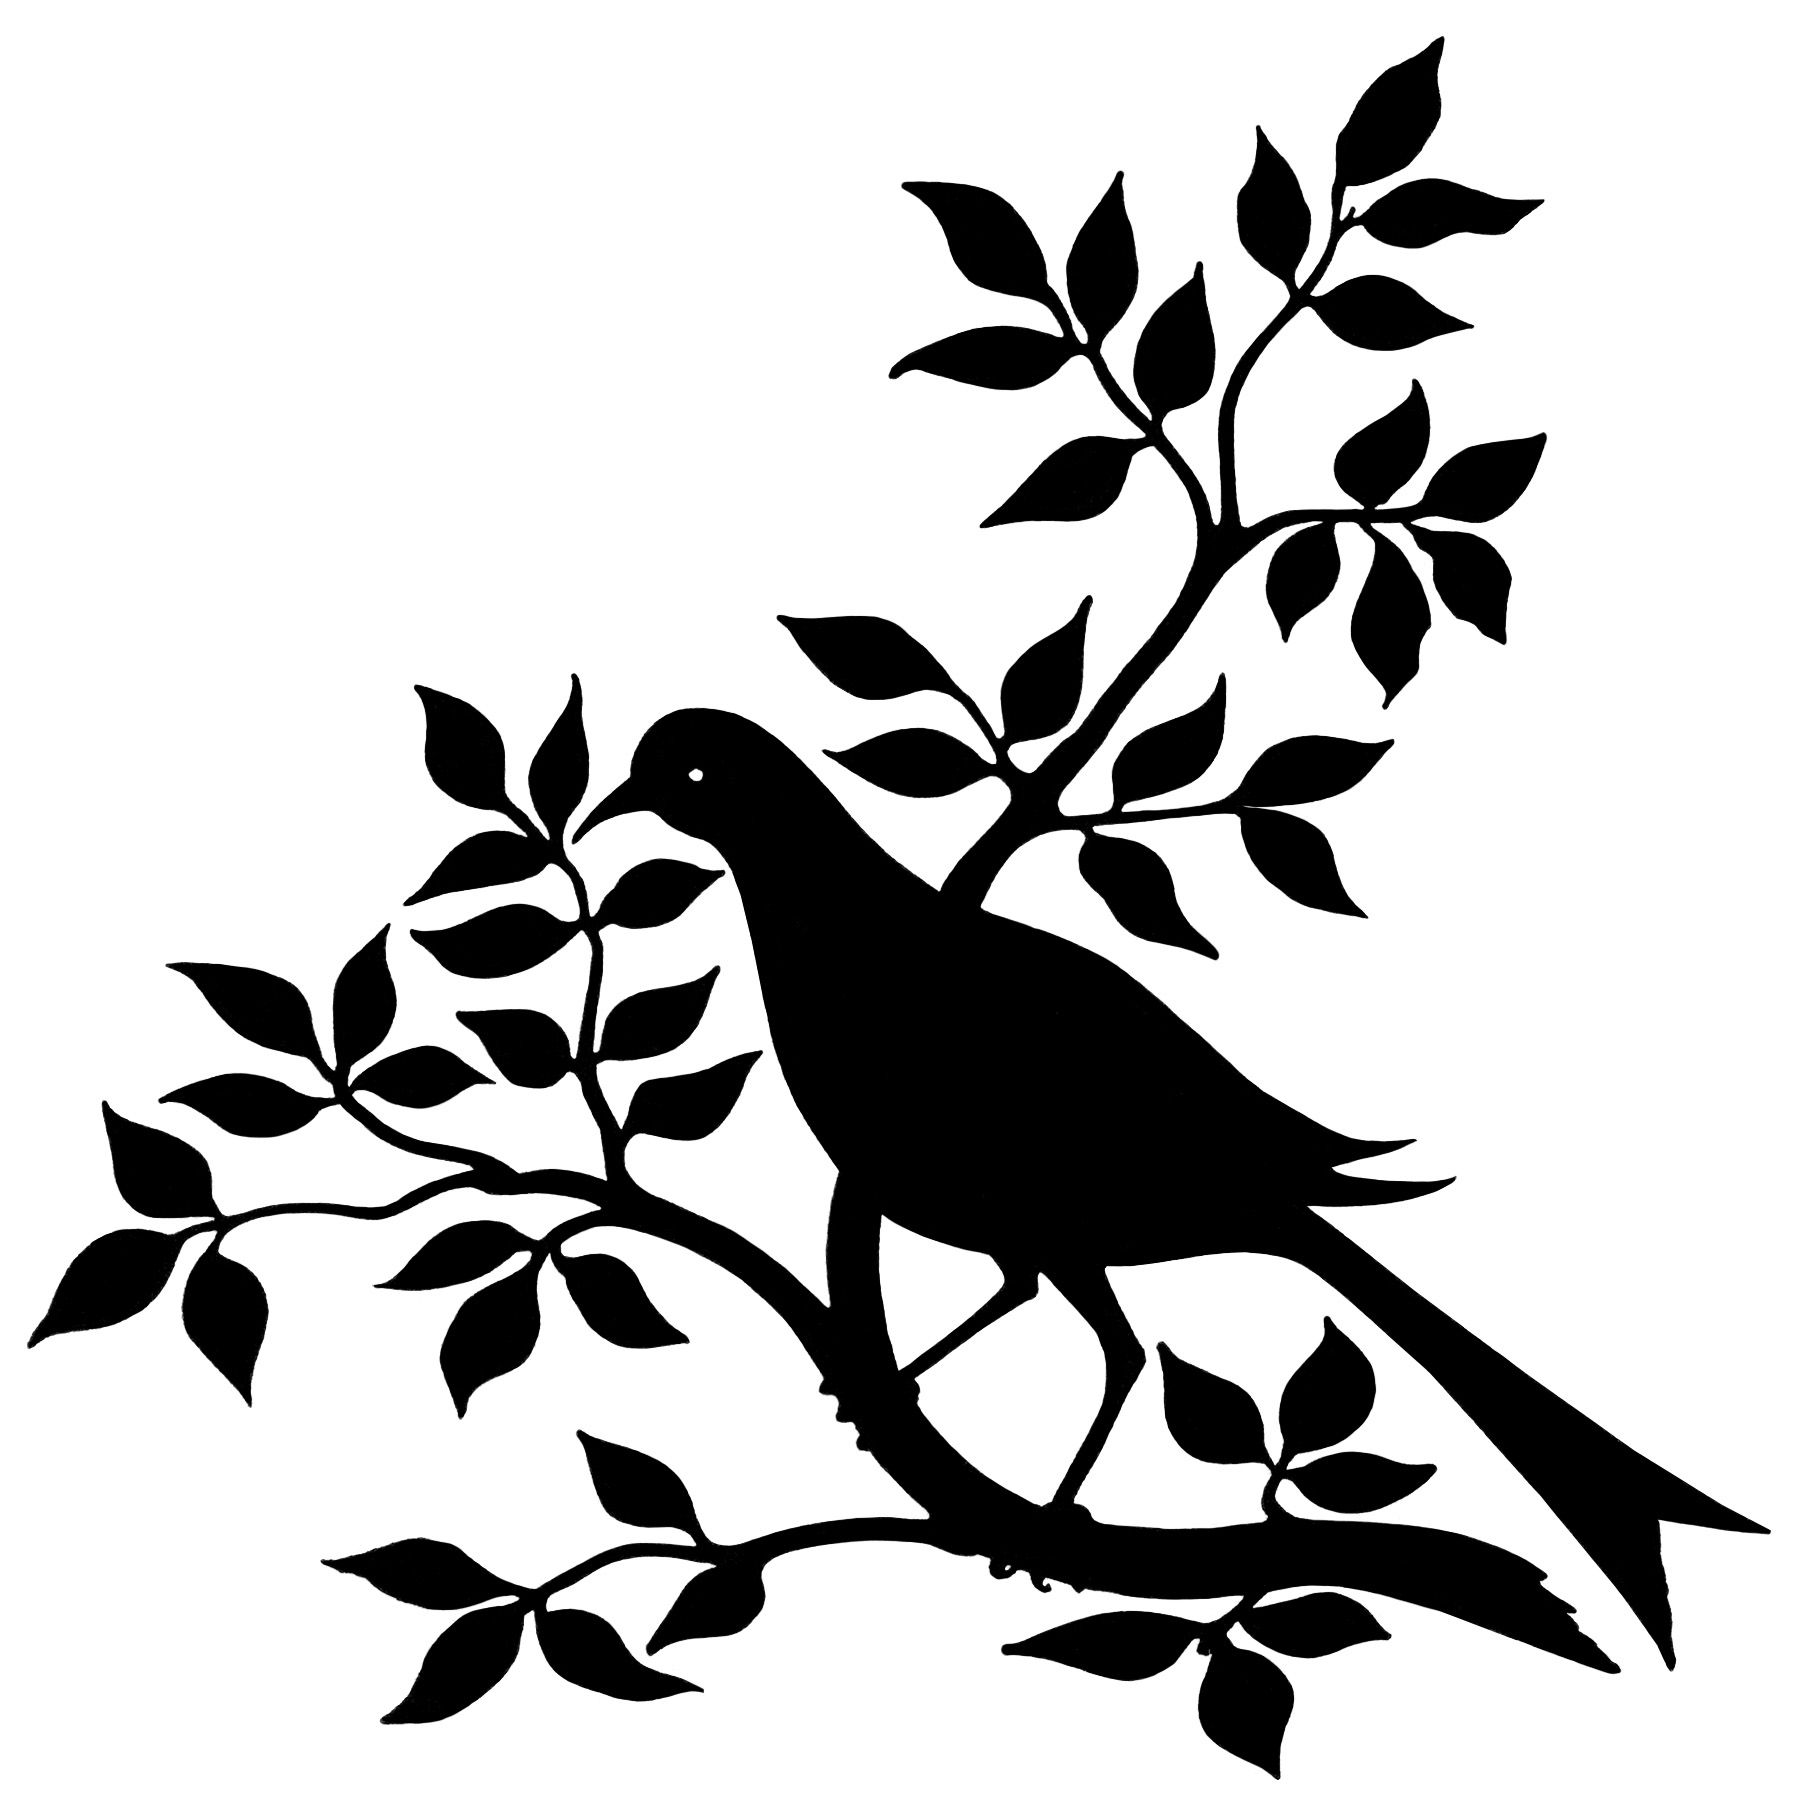 Bird Branch Silhouette Black And White Graphic Vintage